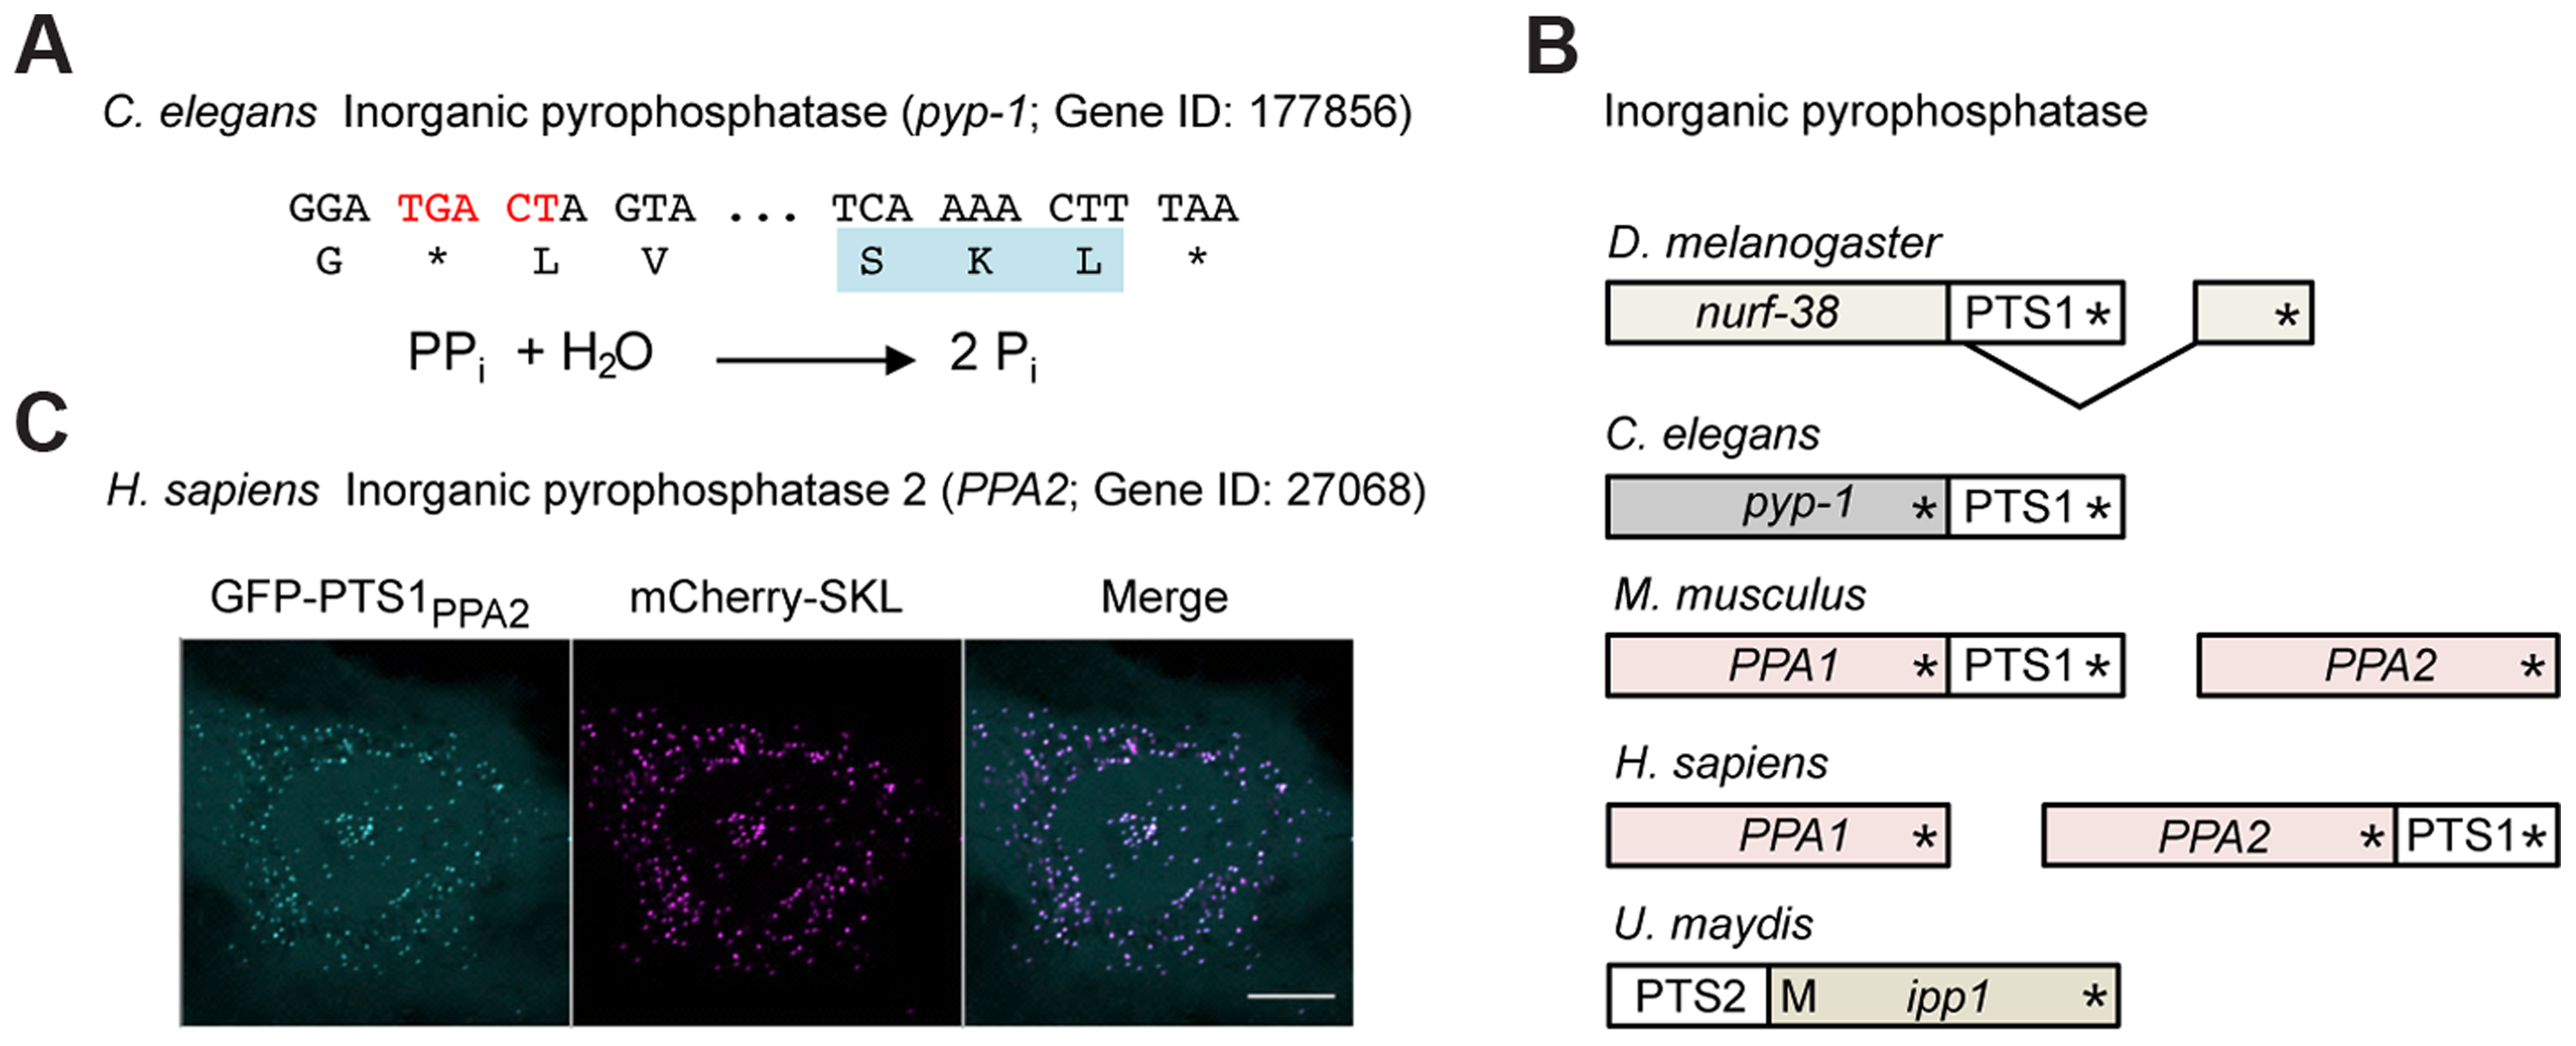 Inorganic pyrophosphatase is targeted to peroxisomes in different species by various mechanisms.